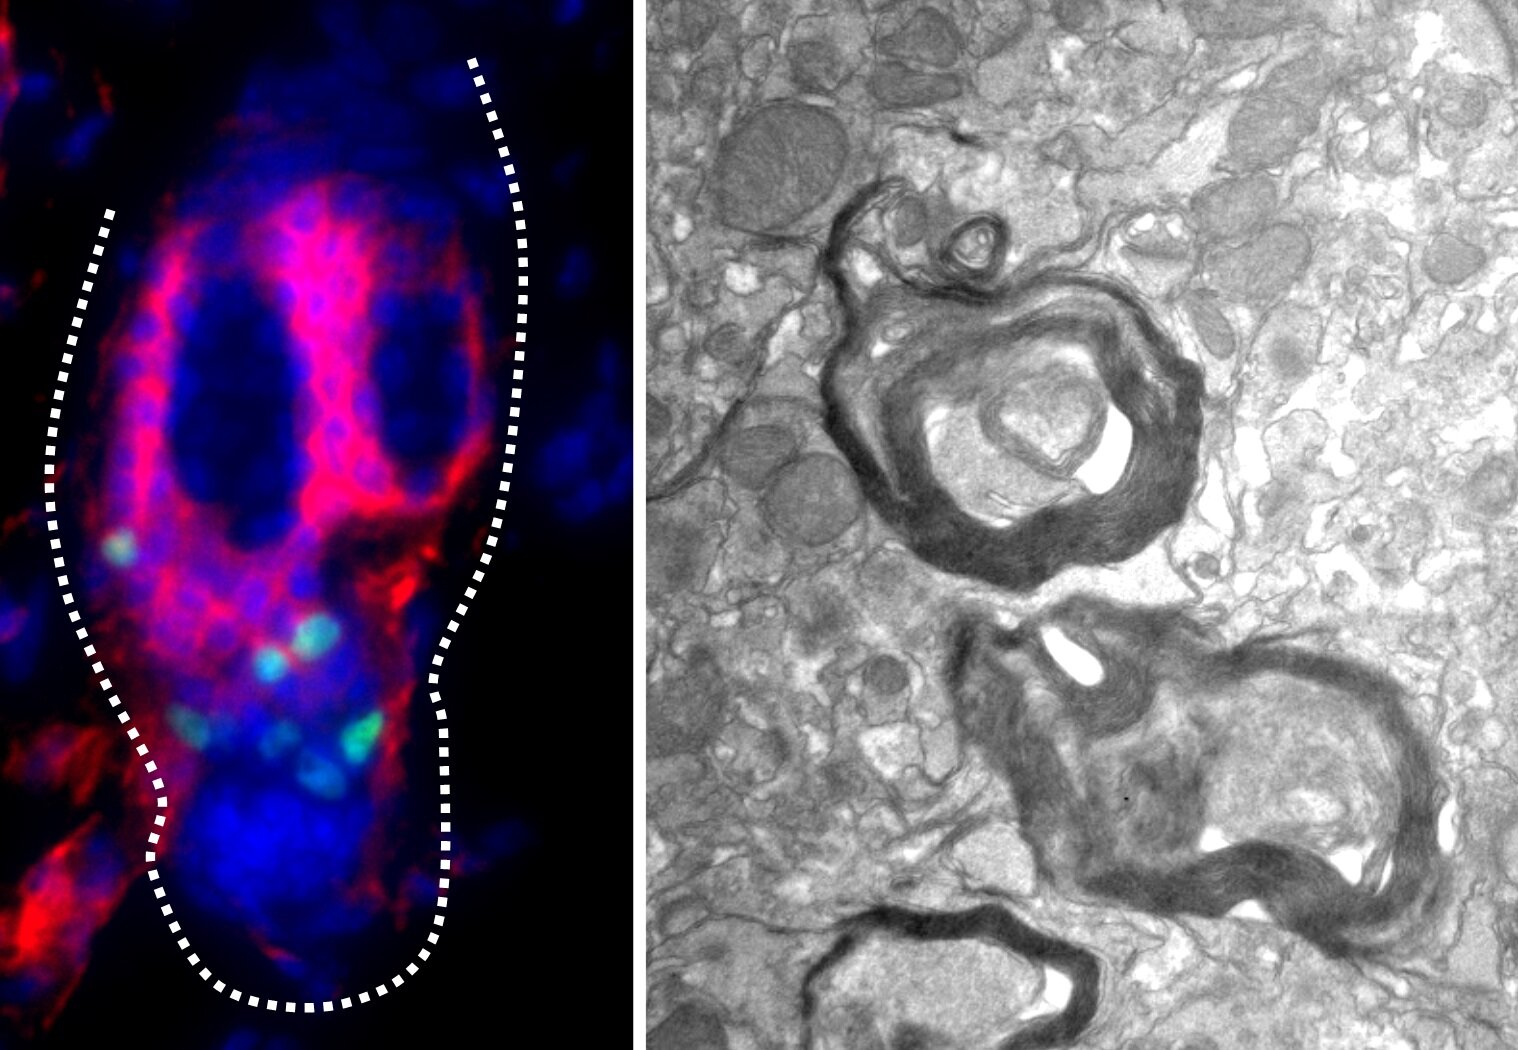 Follicular stem cells are likely to repair damaged neurons